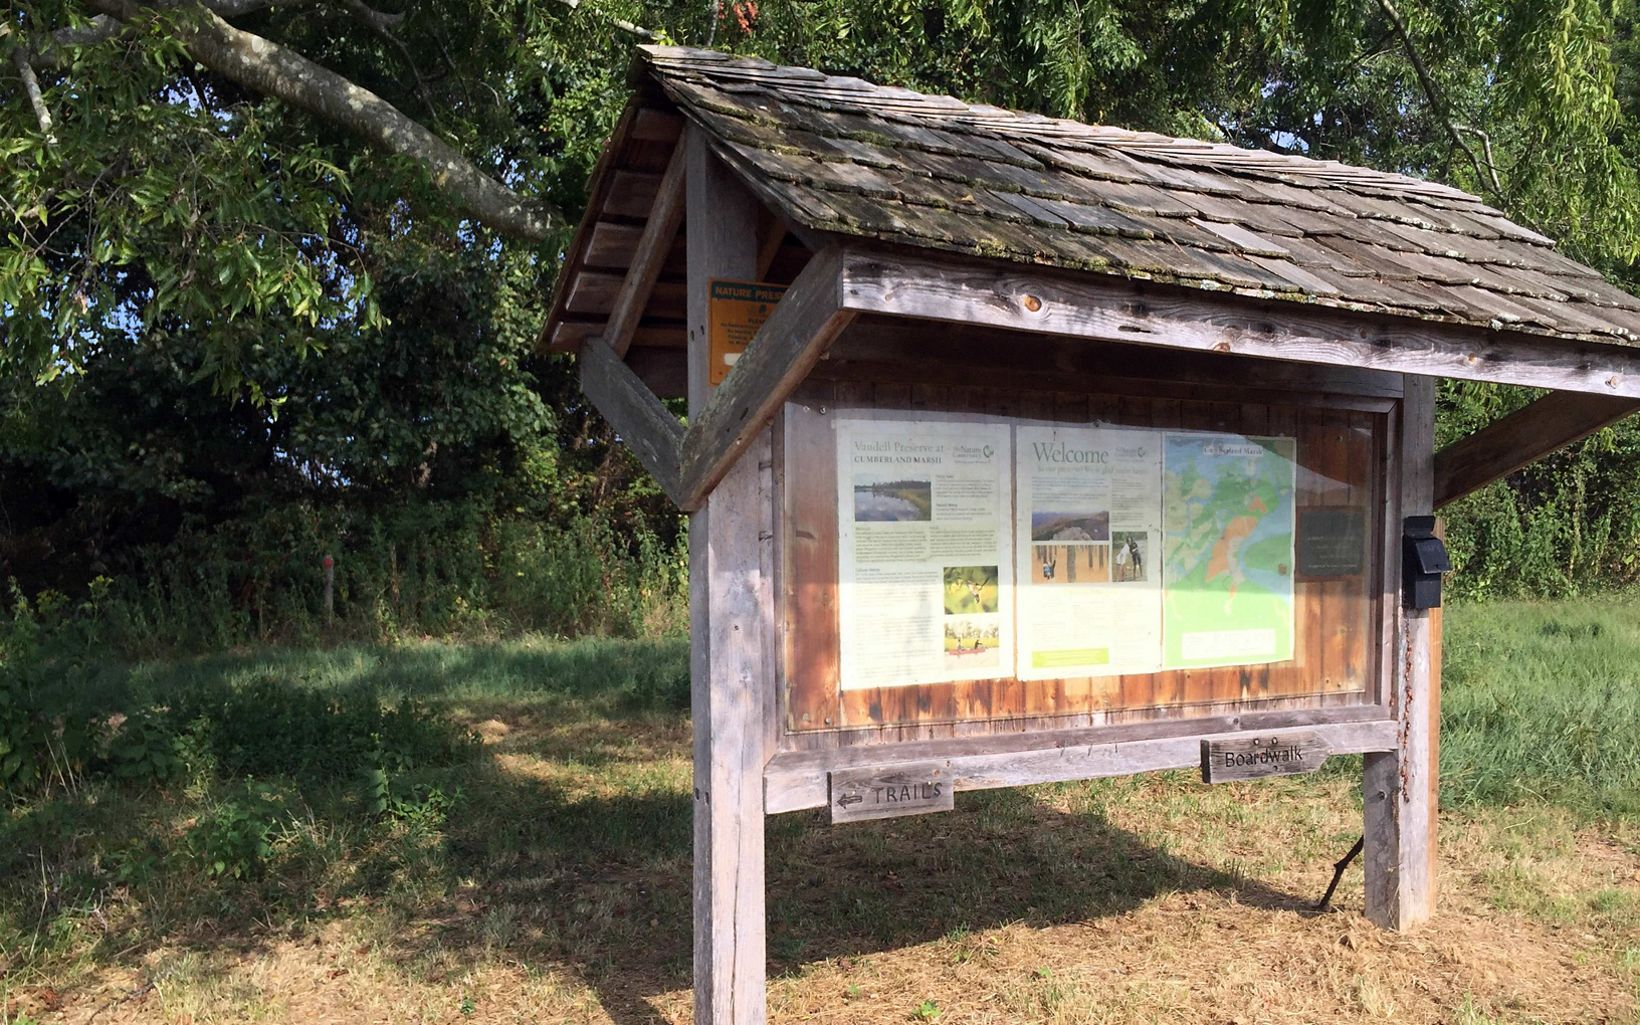 Preserve visitor kiosk. The large wooden message board is protected by an overhanging shingled roof.